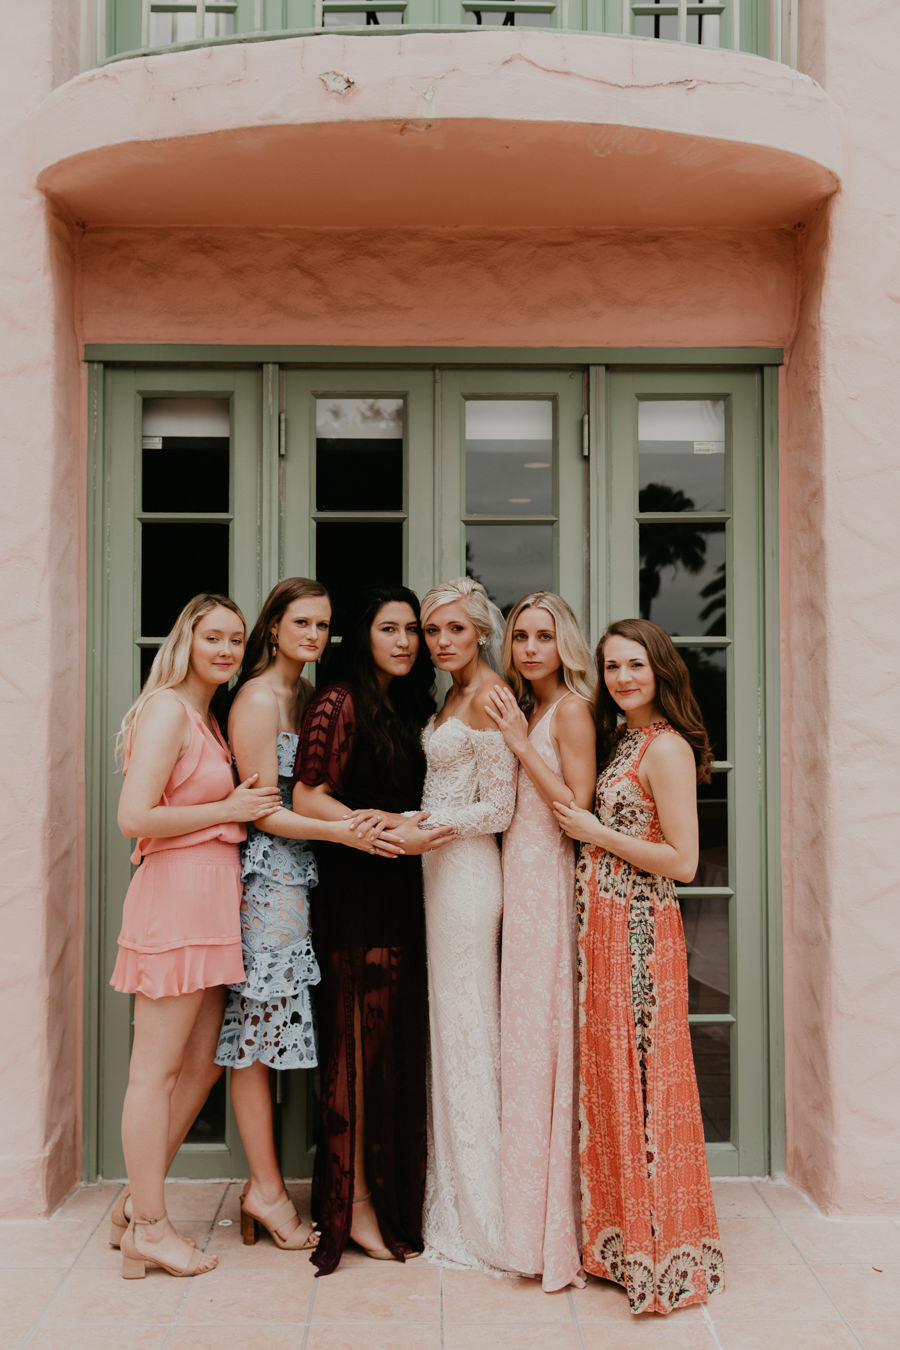 Neely rose gold boho wedding in st pete vinoy A and be Miami first baptist of st pete park shore grill Tampa Wedding Photographer -53.jpg